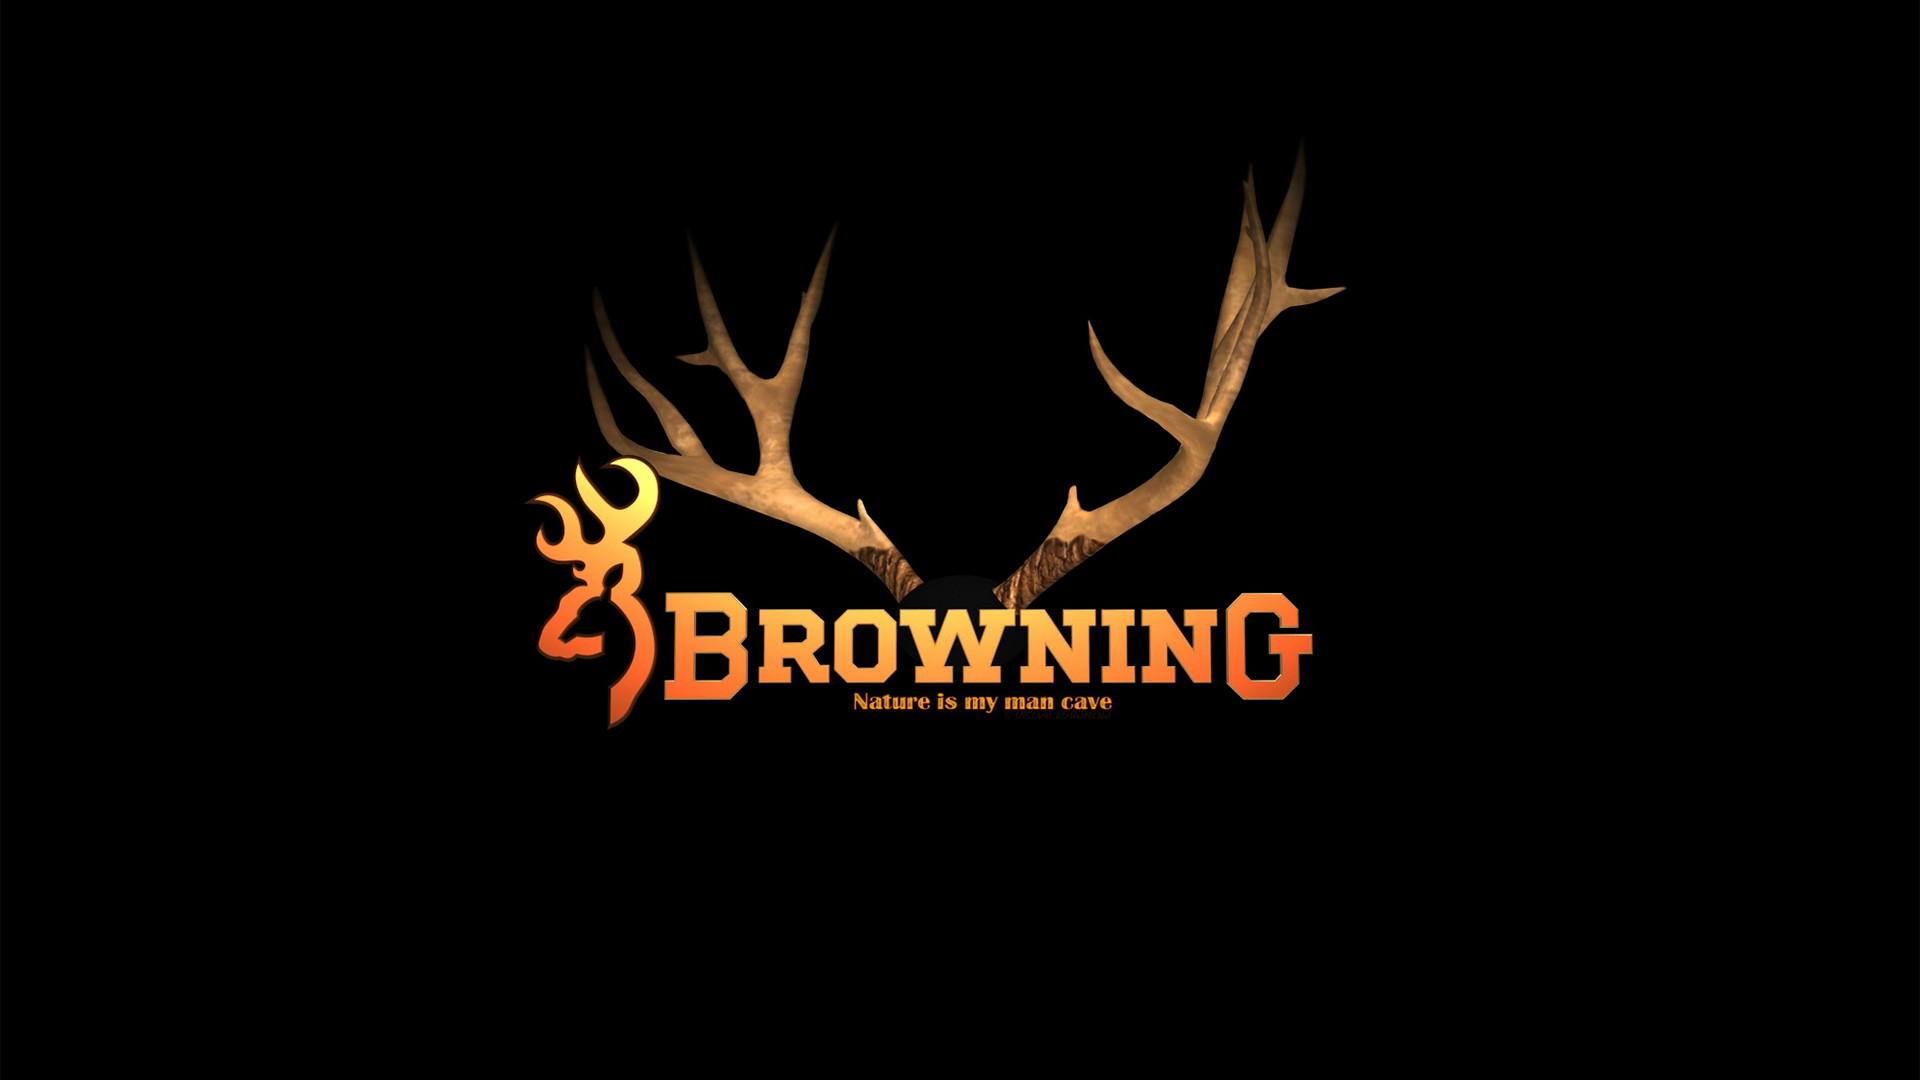 1920x1080 Browning Logo wallpaper - 949921